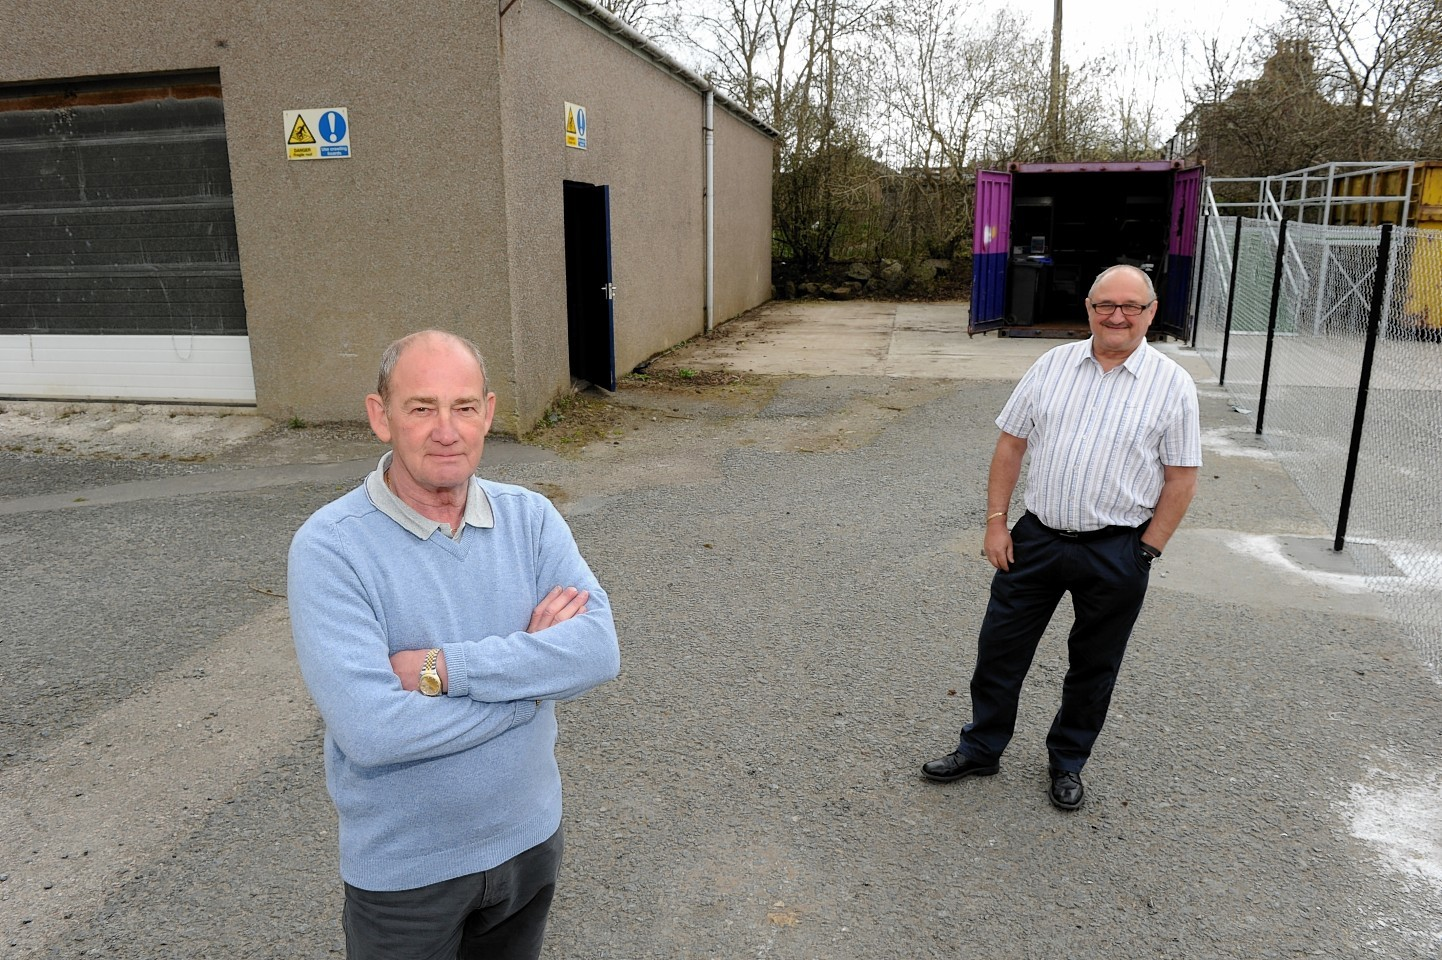 The Ellon and District Men's Shed chairman Charlie  Forrest (left) and secretary Bill Kerr. Picture by Colin Rennie.